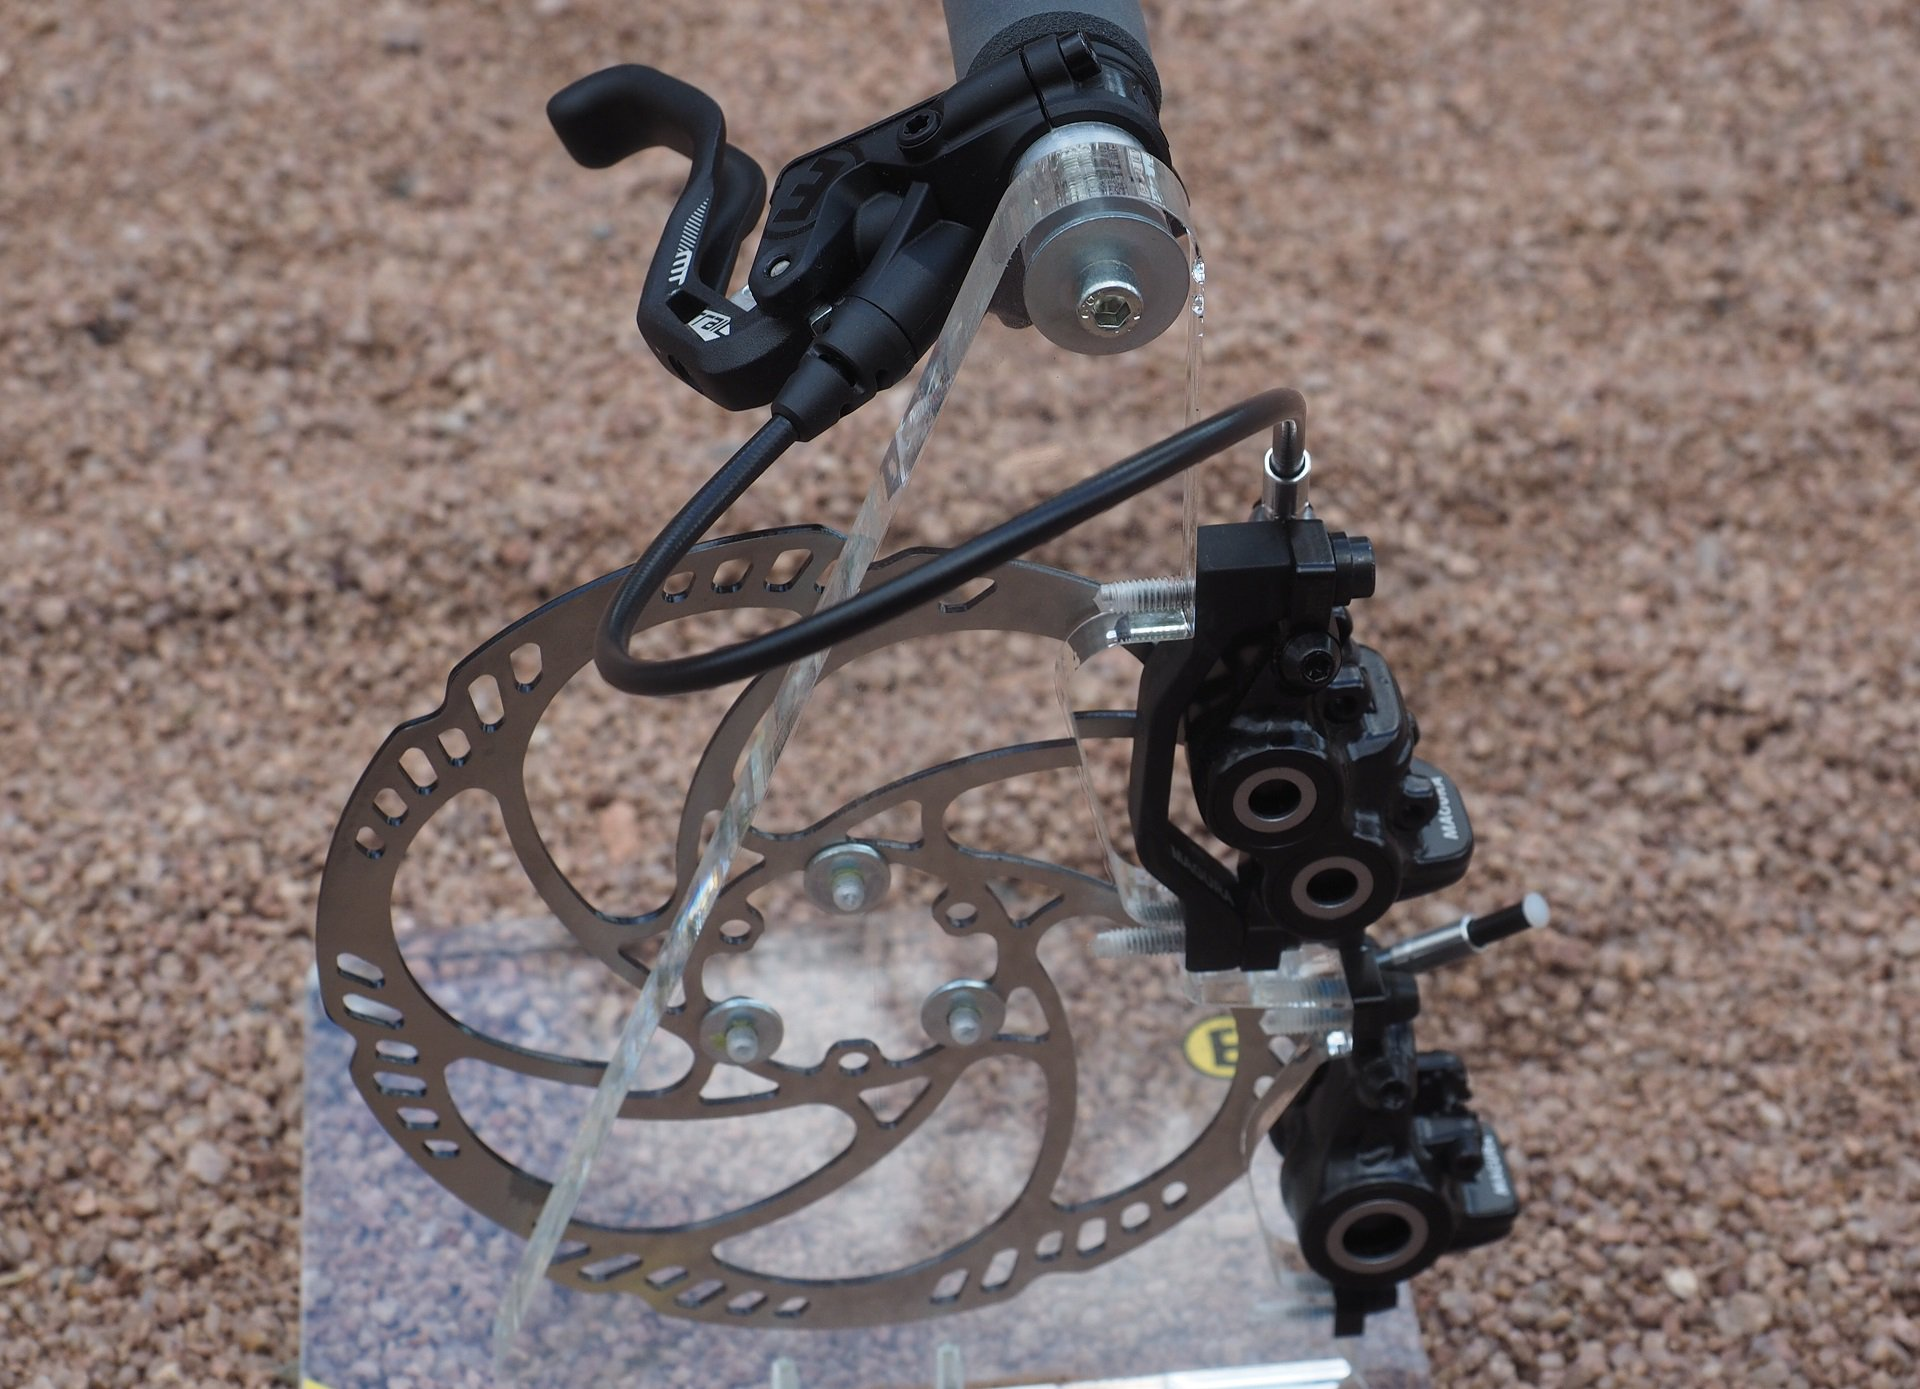 2018 Magura MT Trail Sport : Bleed How To & First Impressions